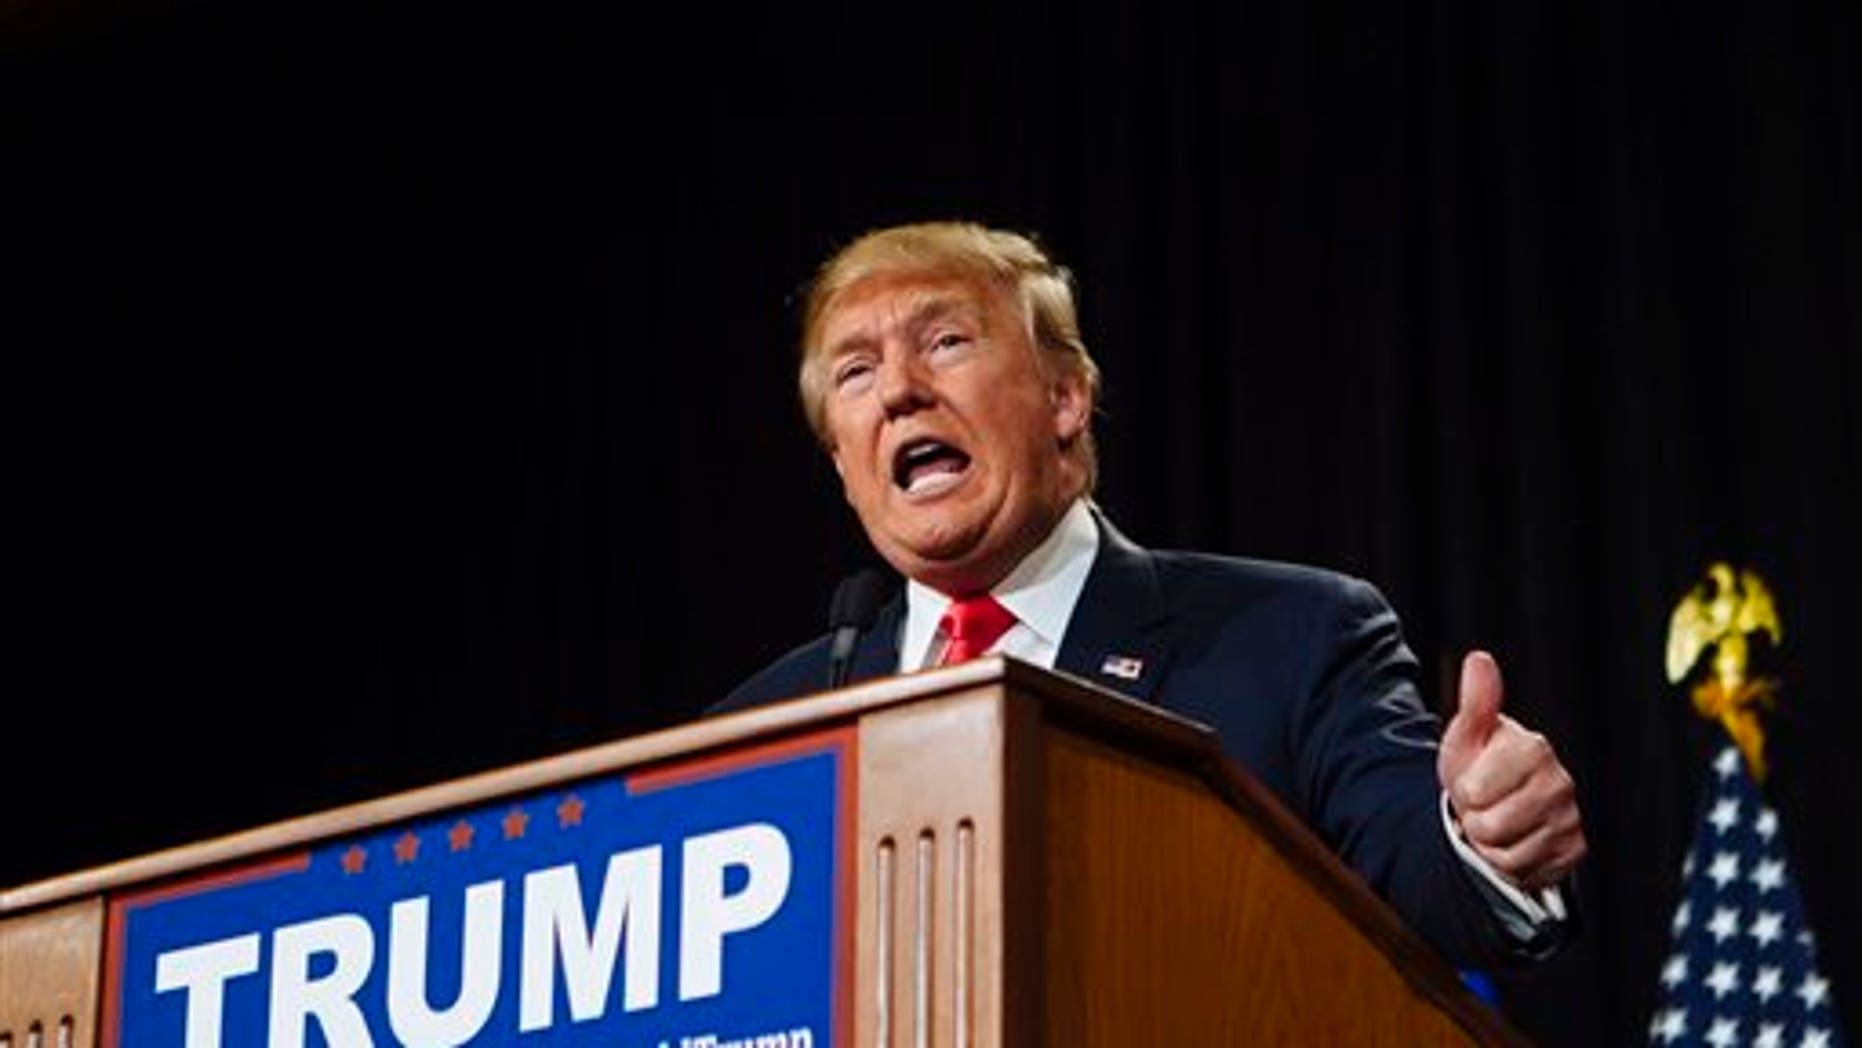 Fil e photo - Republican Presidential candidate Donald Trump speaks at a rally at the South Point Hotel, Casino, and Spa in Las Vegas on Thursday, Jan. 21, 2016. (Mikayla Whitmore/Las Vegas Sun via AP)